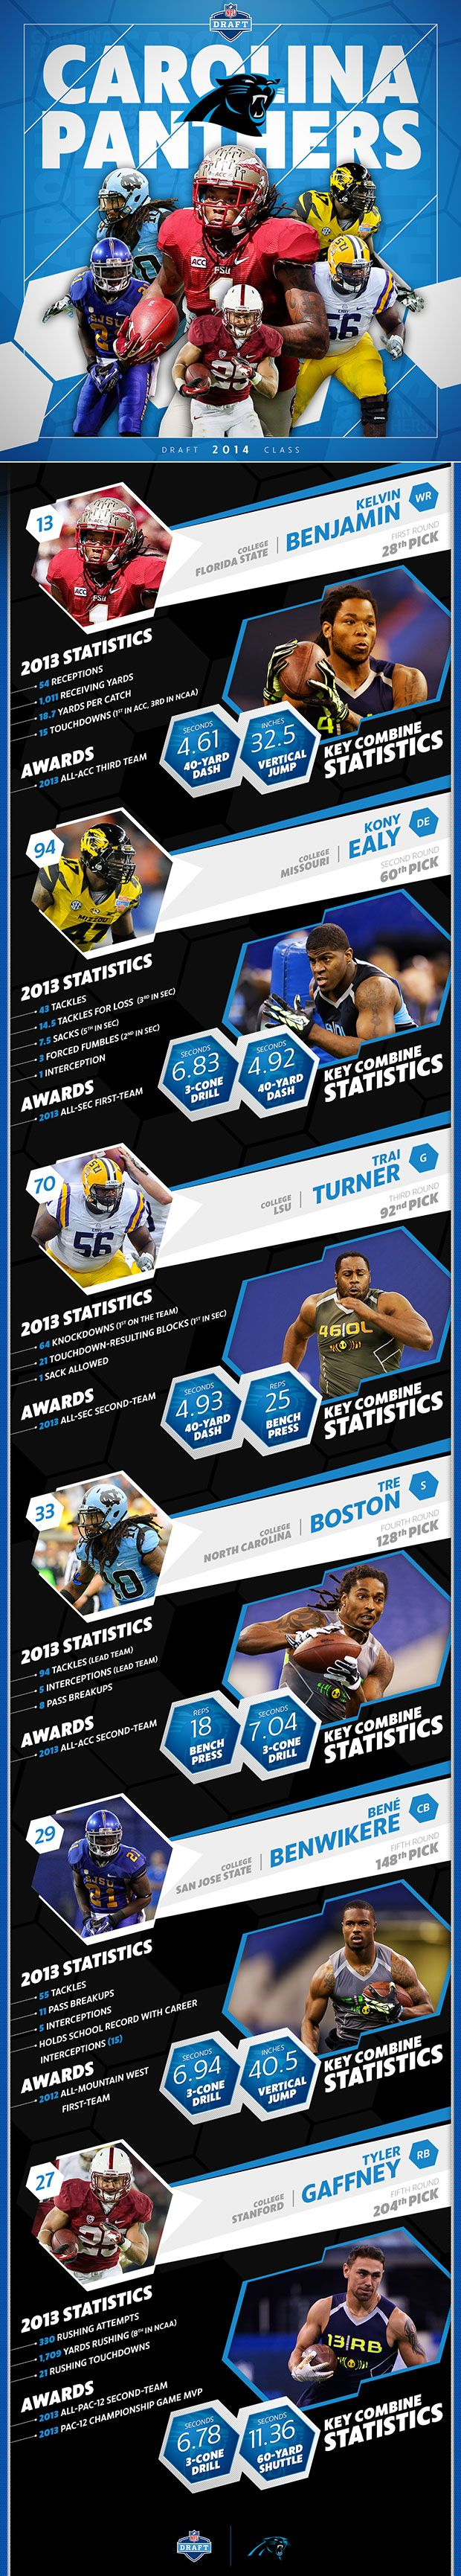 2014  Carolina Panthers Draft class infographic